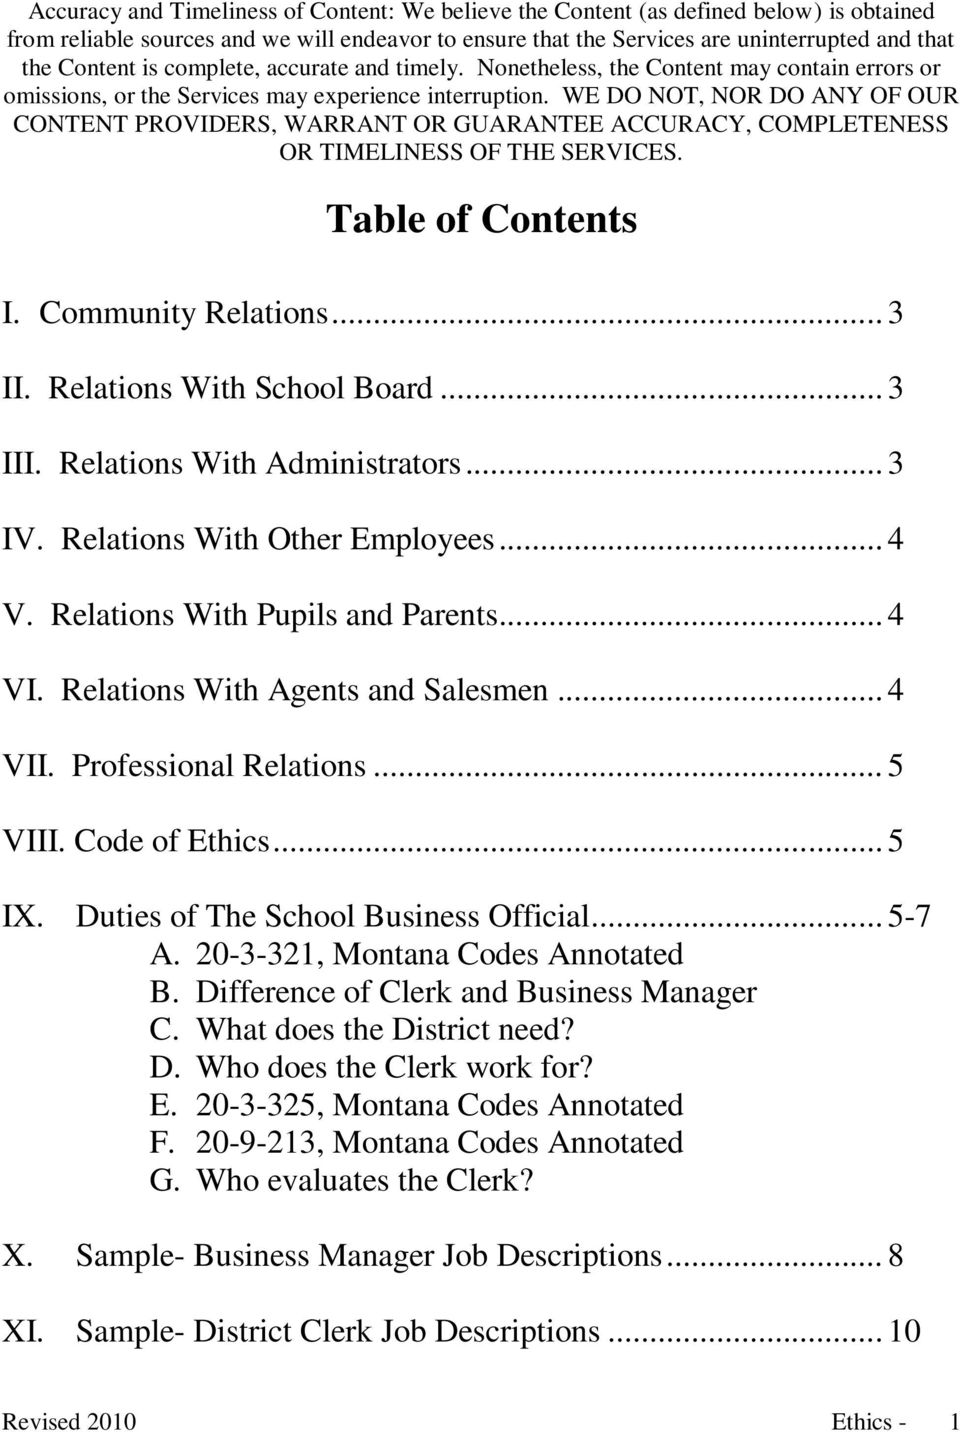 WE DO NOT, NOR DO ANY OF OUR CONTENT PROVIDERS, WARRANT OR GUARANTEE ACCURACY, COMPLETENESS OR TIMELINESS OF THE SERVICES. Table of Contents I. Community Relations... 3 II.